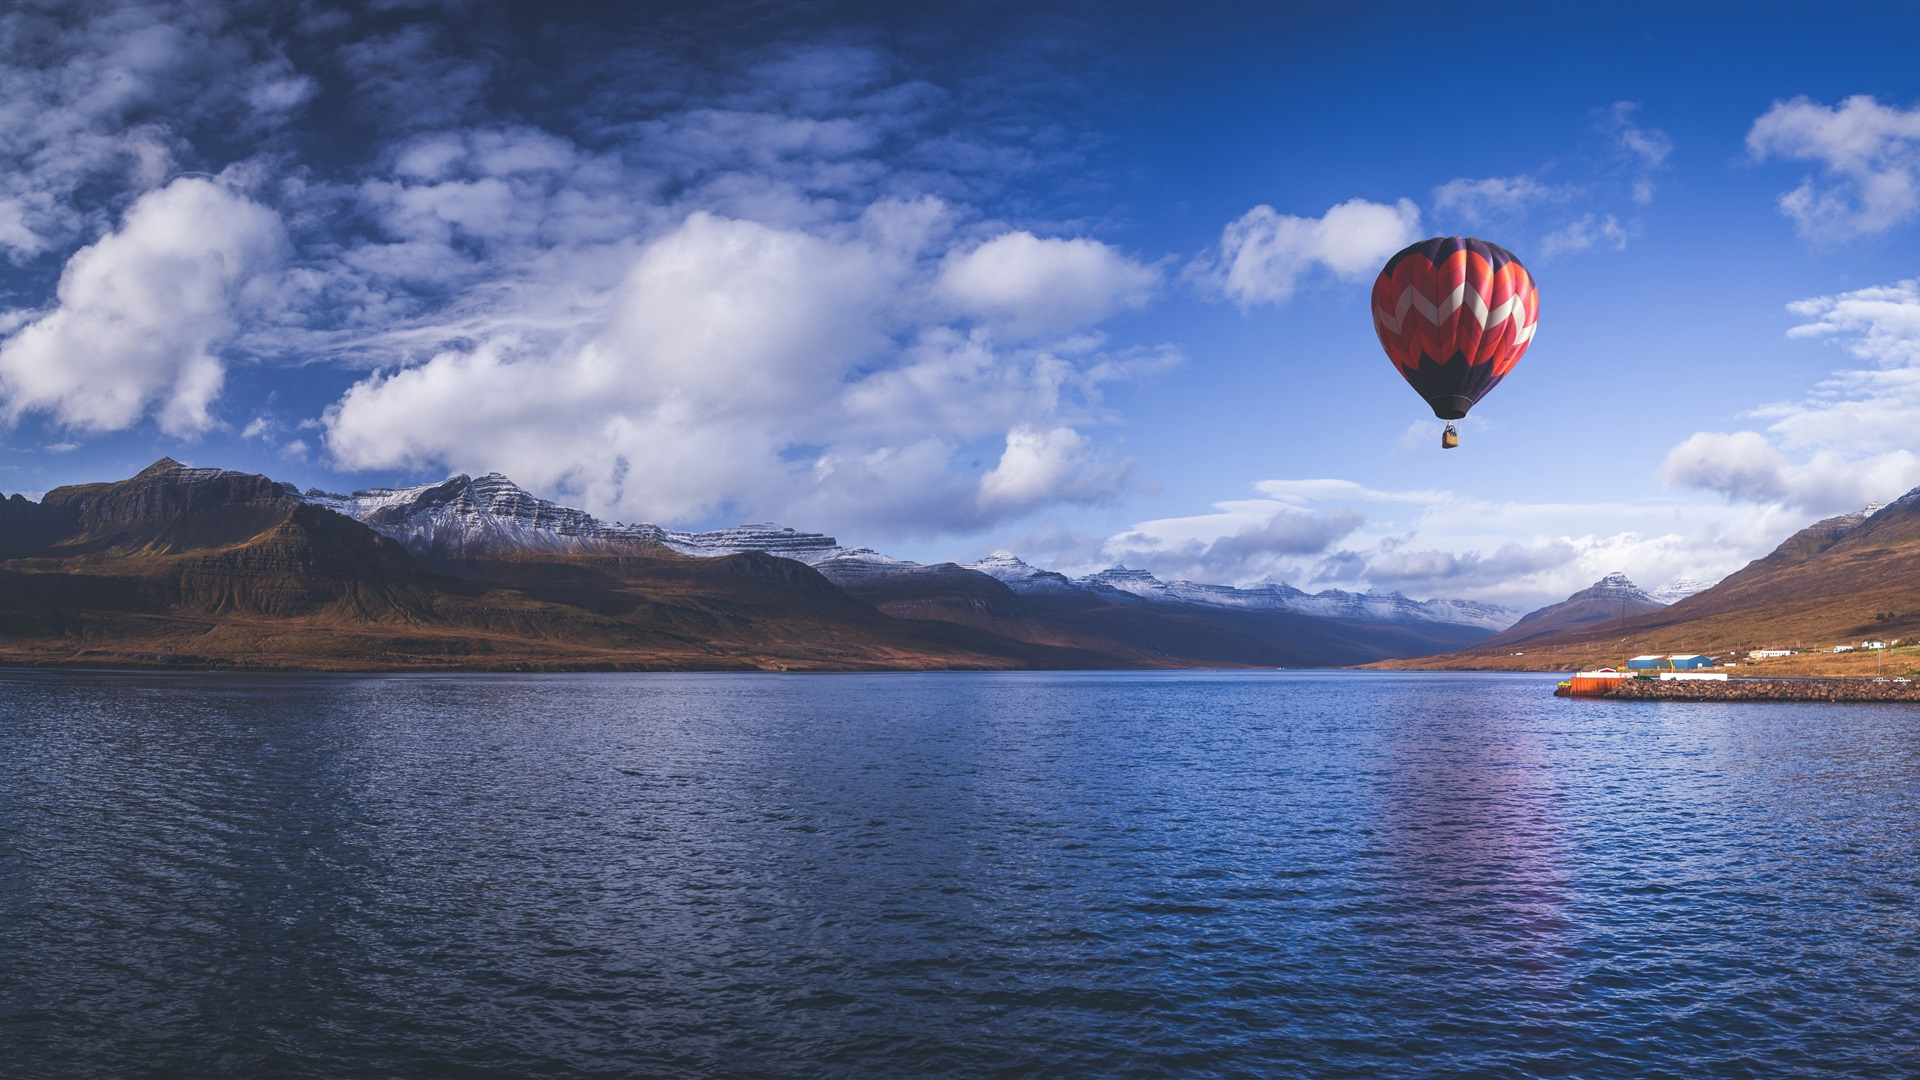 Hot Air Balloon, Sky, Mountains, Fjord, Sea, Iceland